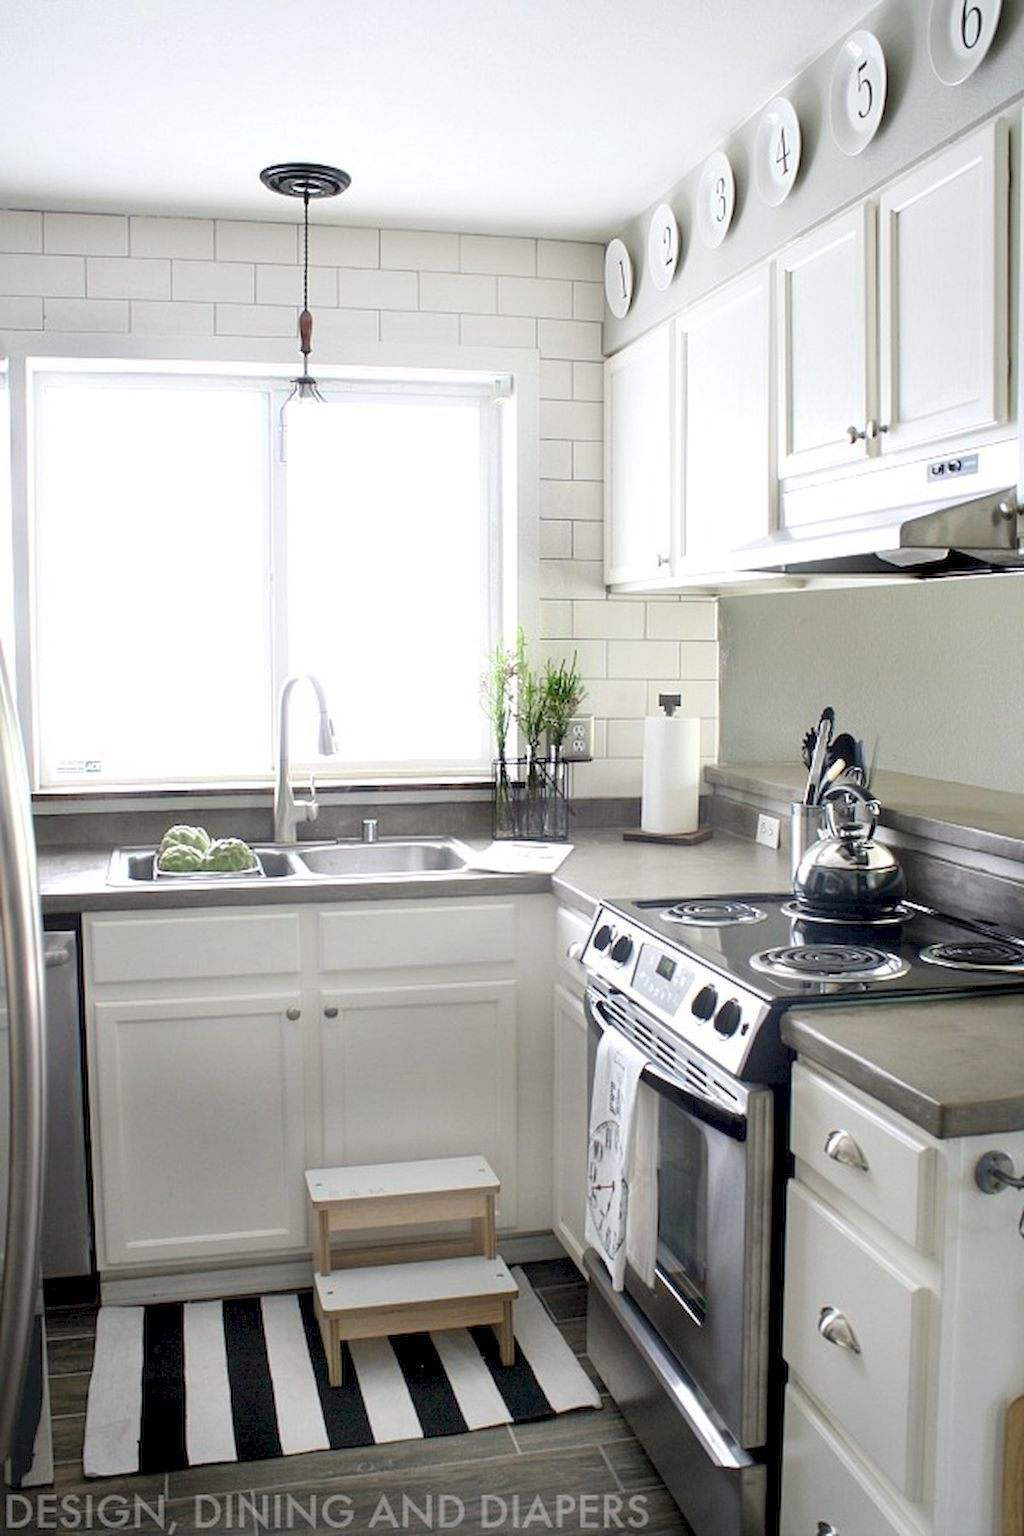 Best Ways To Prepare For A Kitchen Remodeling Or Renovation Project Ideas27